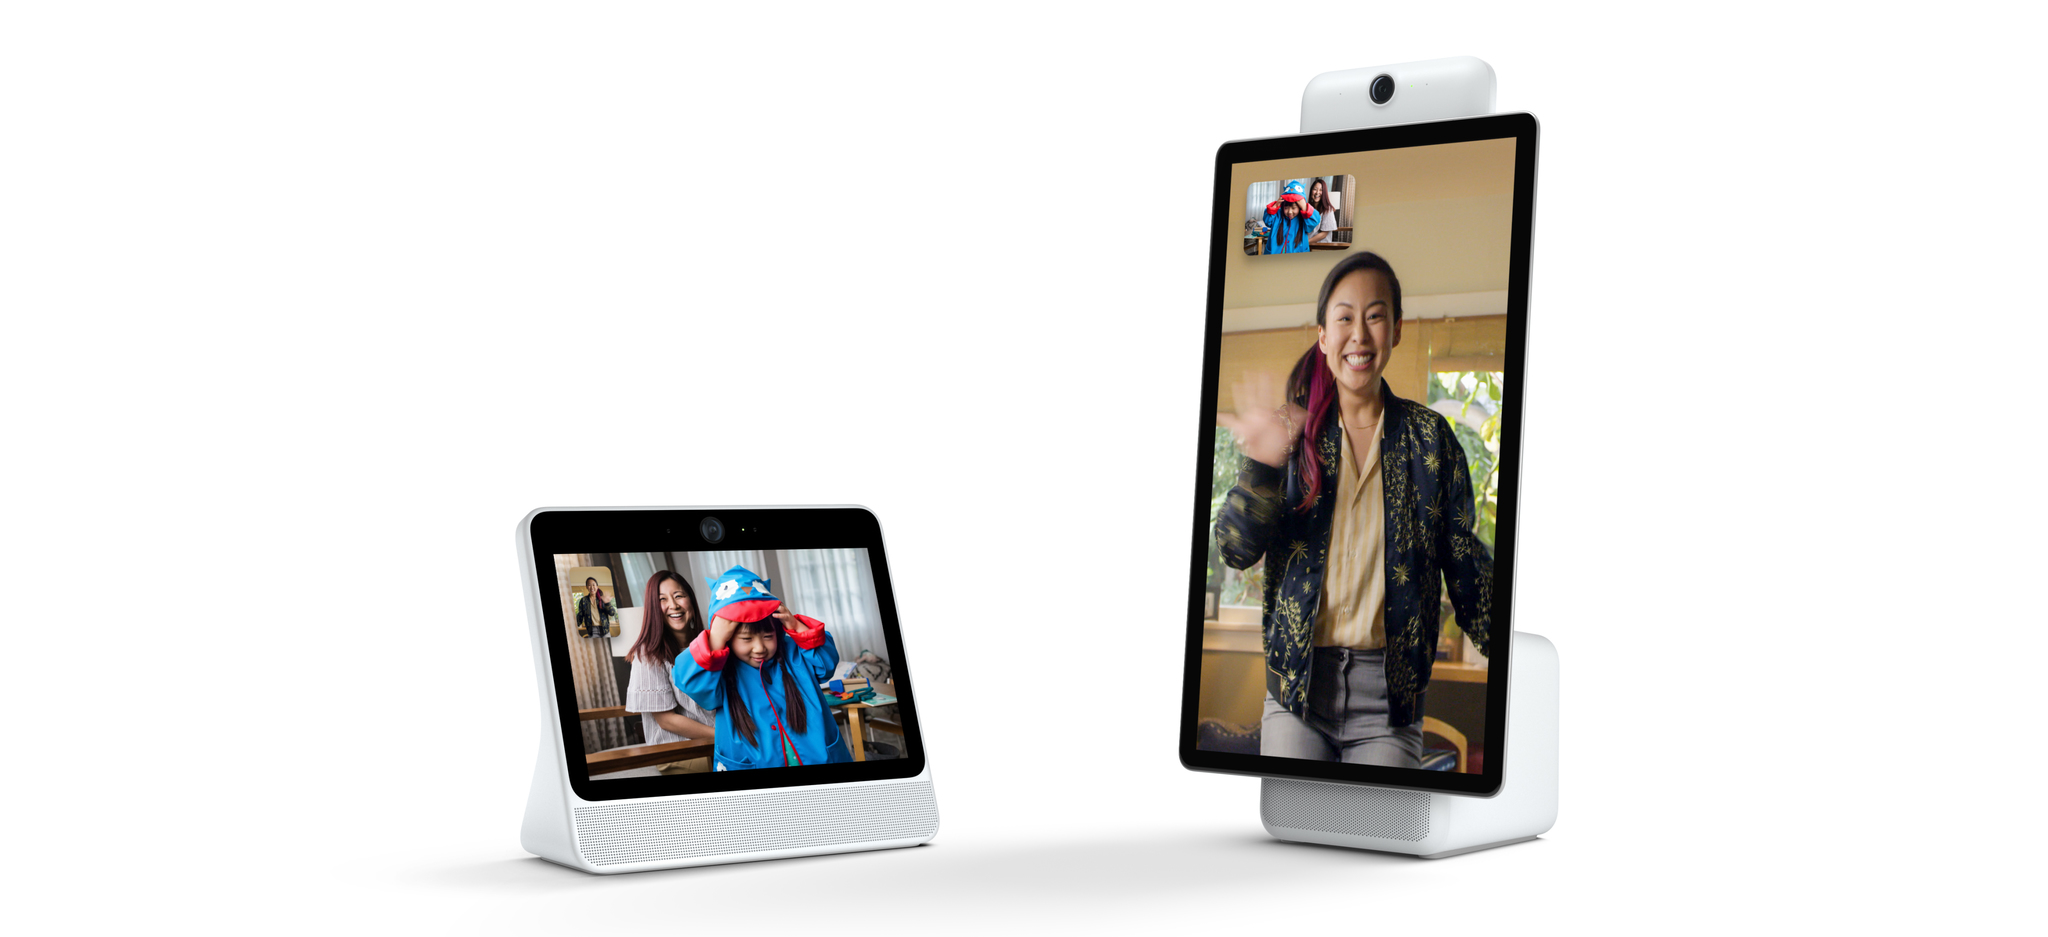 Facebook's new Portal video calling device is its first product for homes.